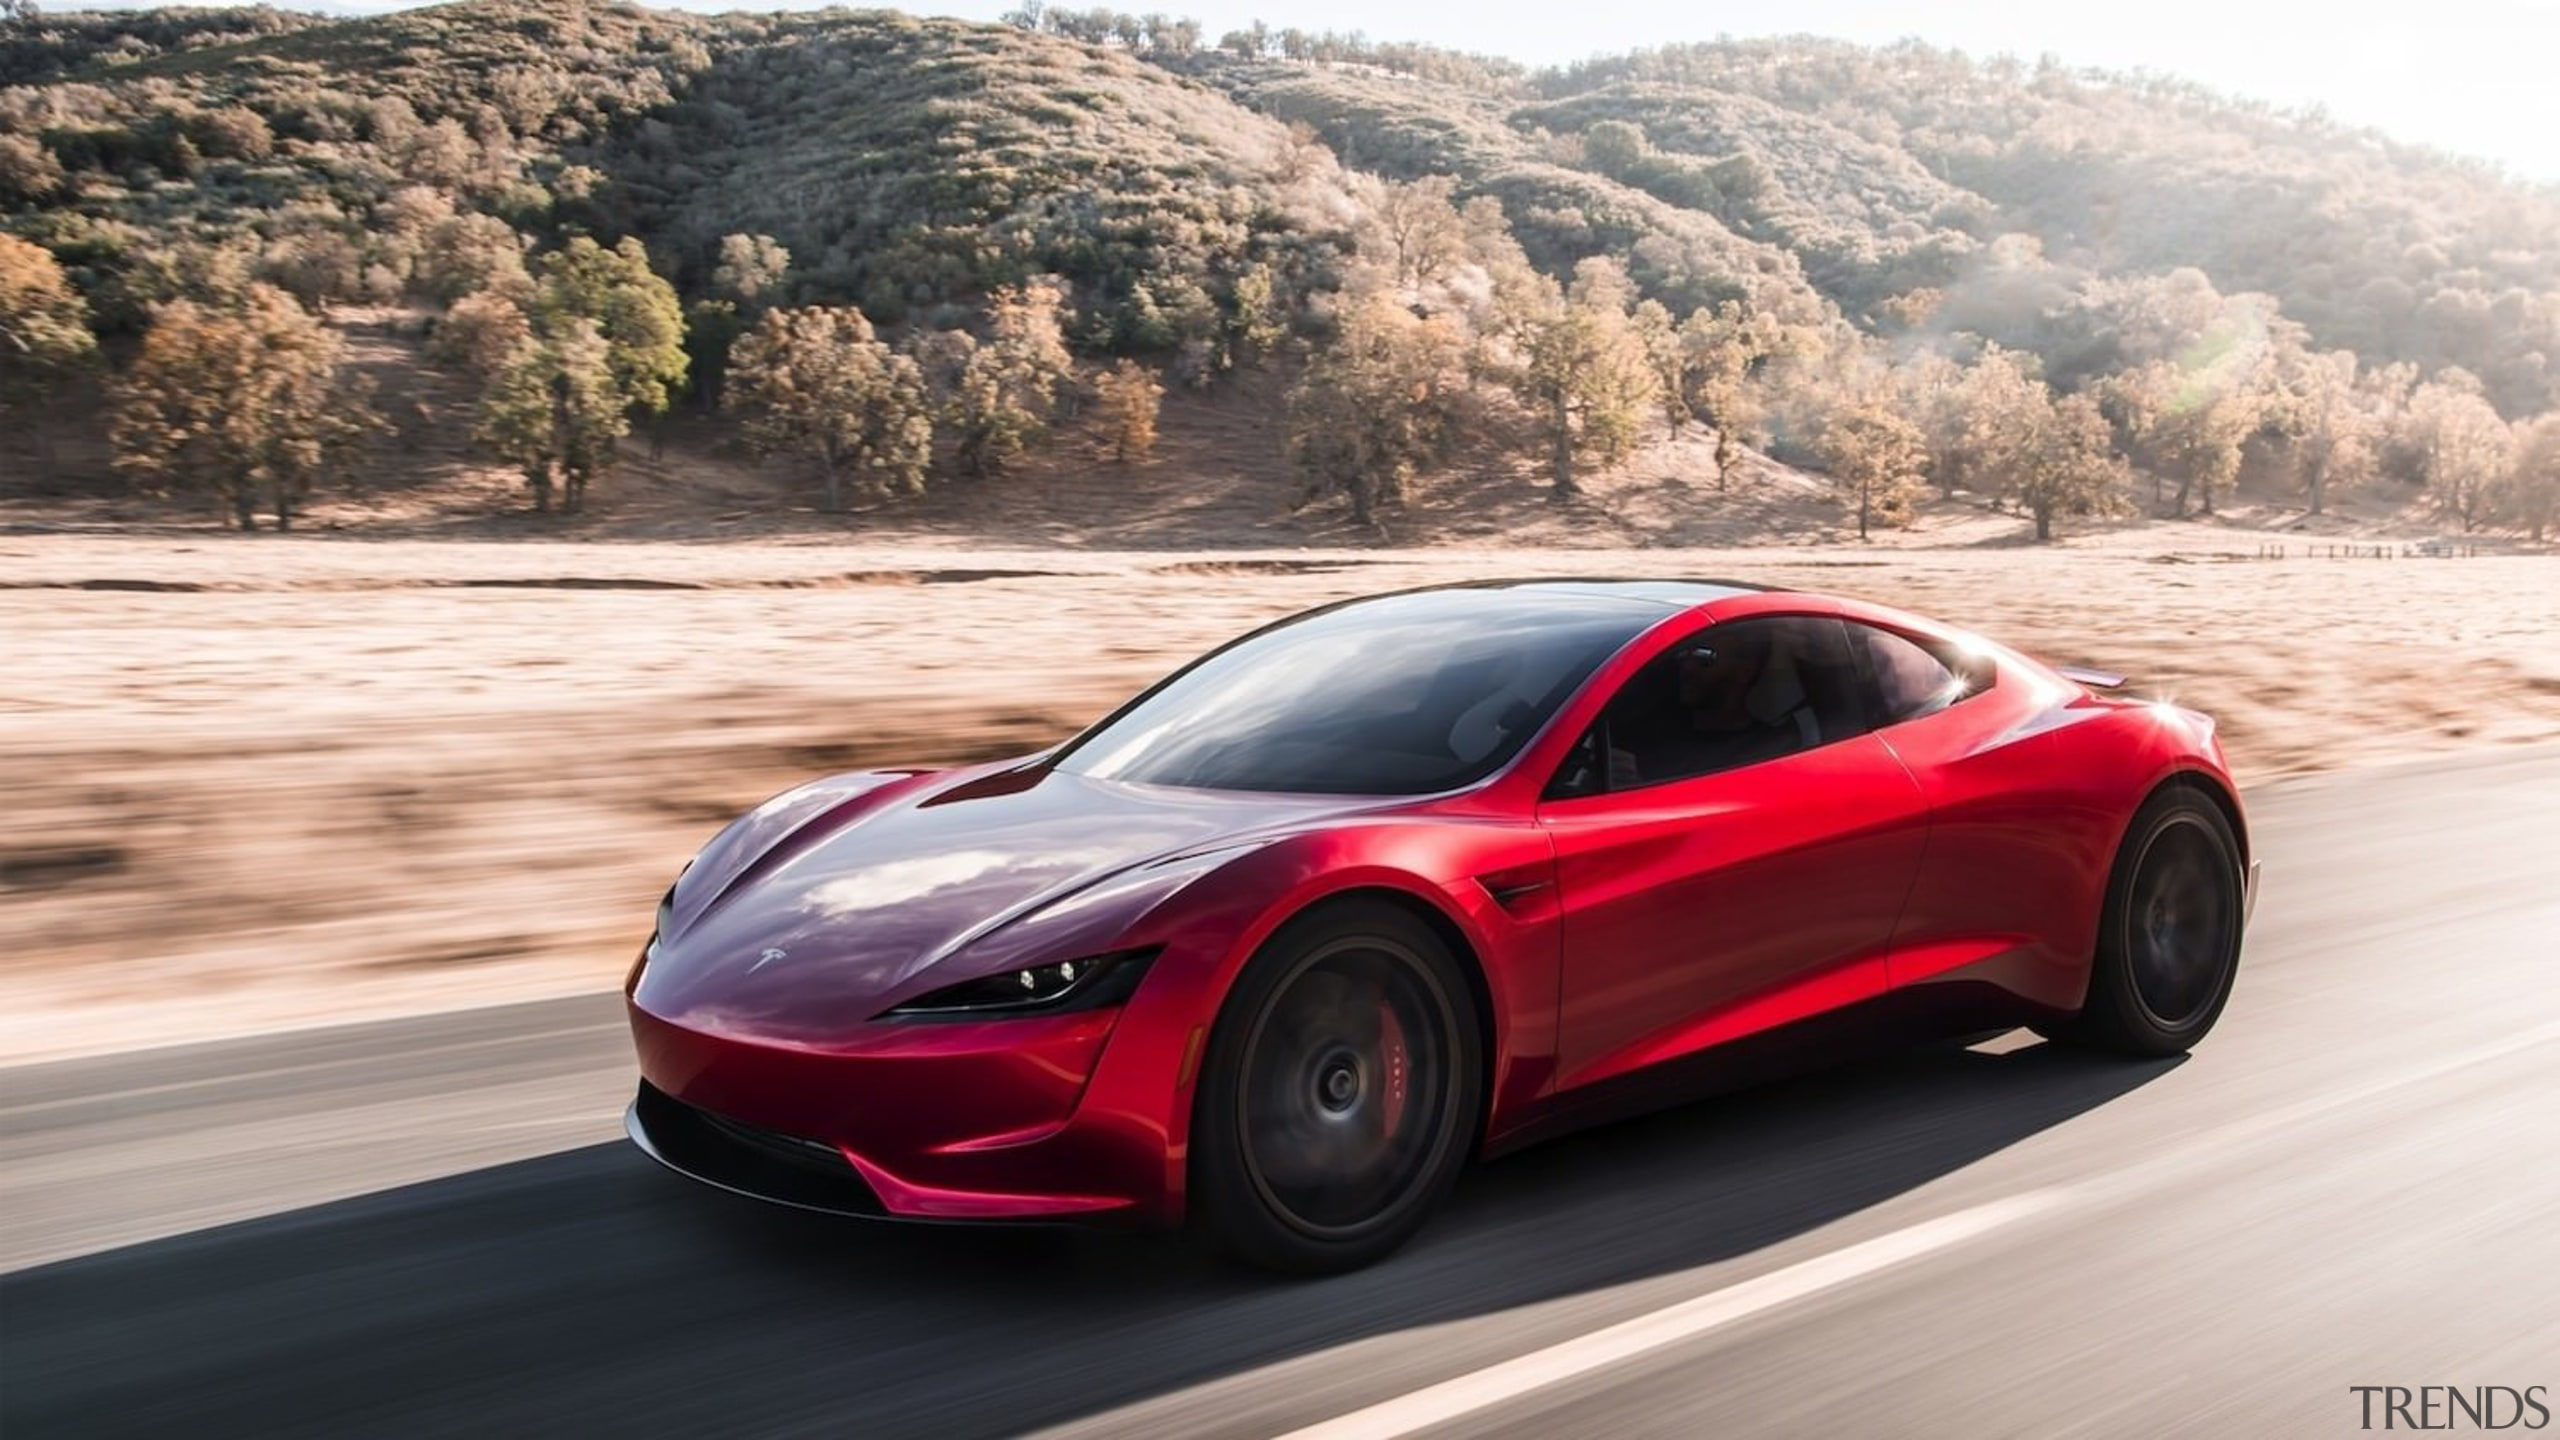 Tesla's new Roadster - Tesla's new Roadster - automotive design, car, concept car, family car, land vehicle, luxury vehicle, mid size car, motor vehicle, performance car, personal luxury car, race car, sports car, supercar, vehicle, white